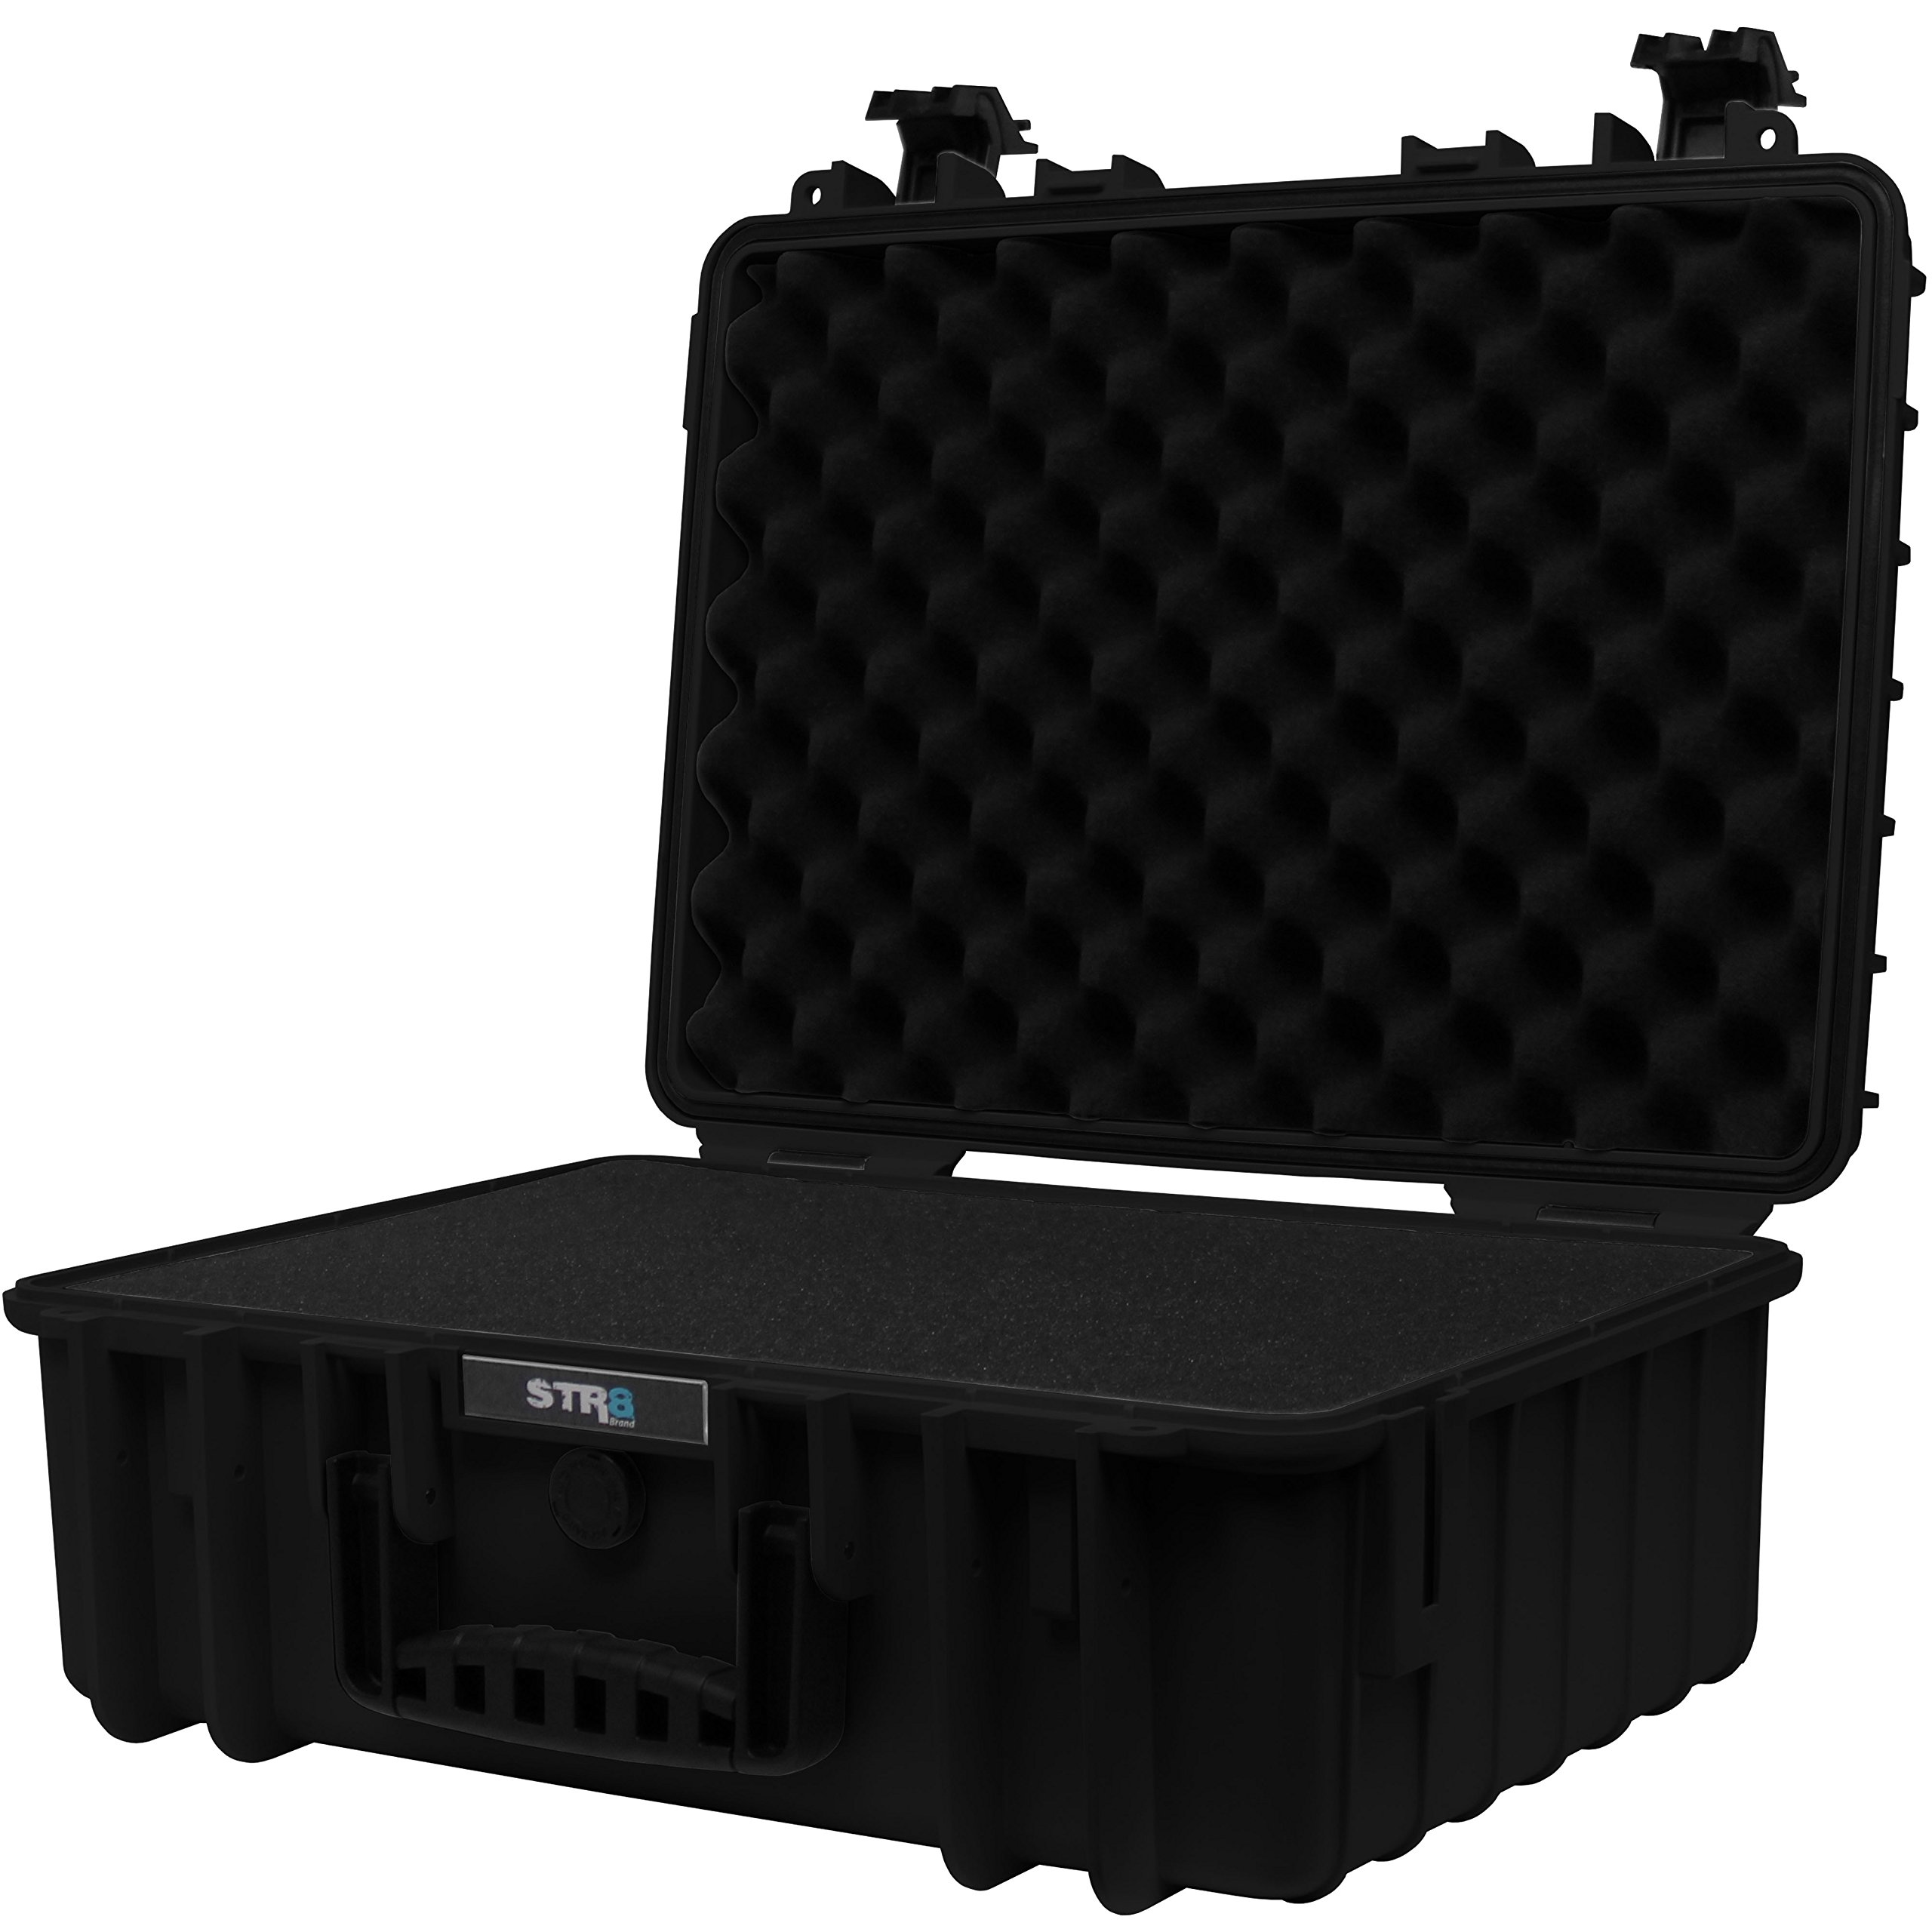 STR8Brand STR8 Brand 17'' Weather Resistant, Smellproof, Lockable, Glass Protector, Outdoor Carrying Case for Multi-Purpose with Pluck Foam (Onyx Black)